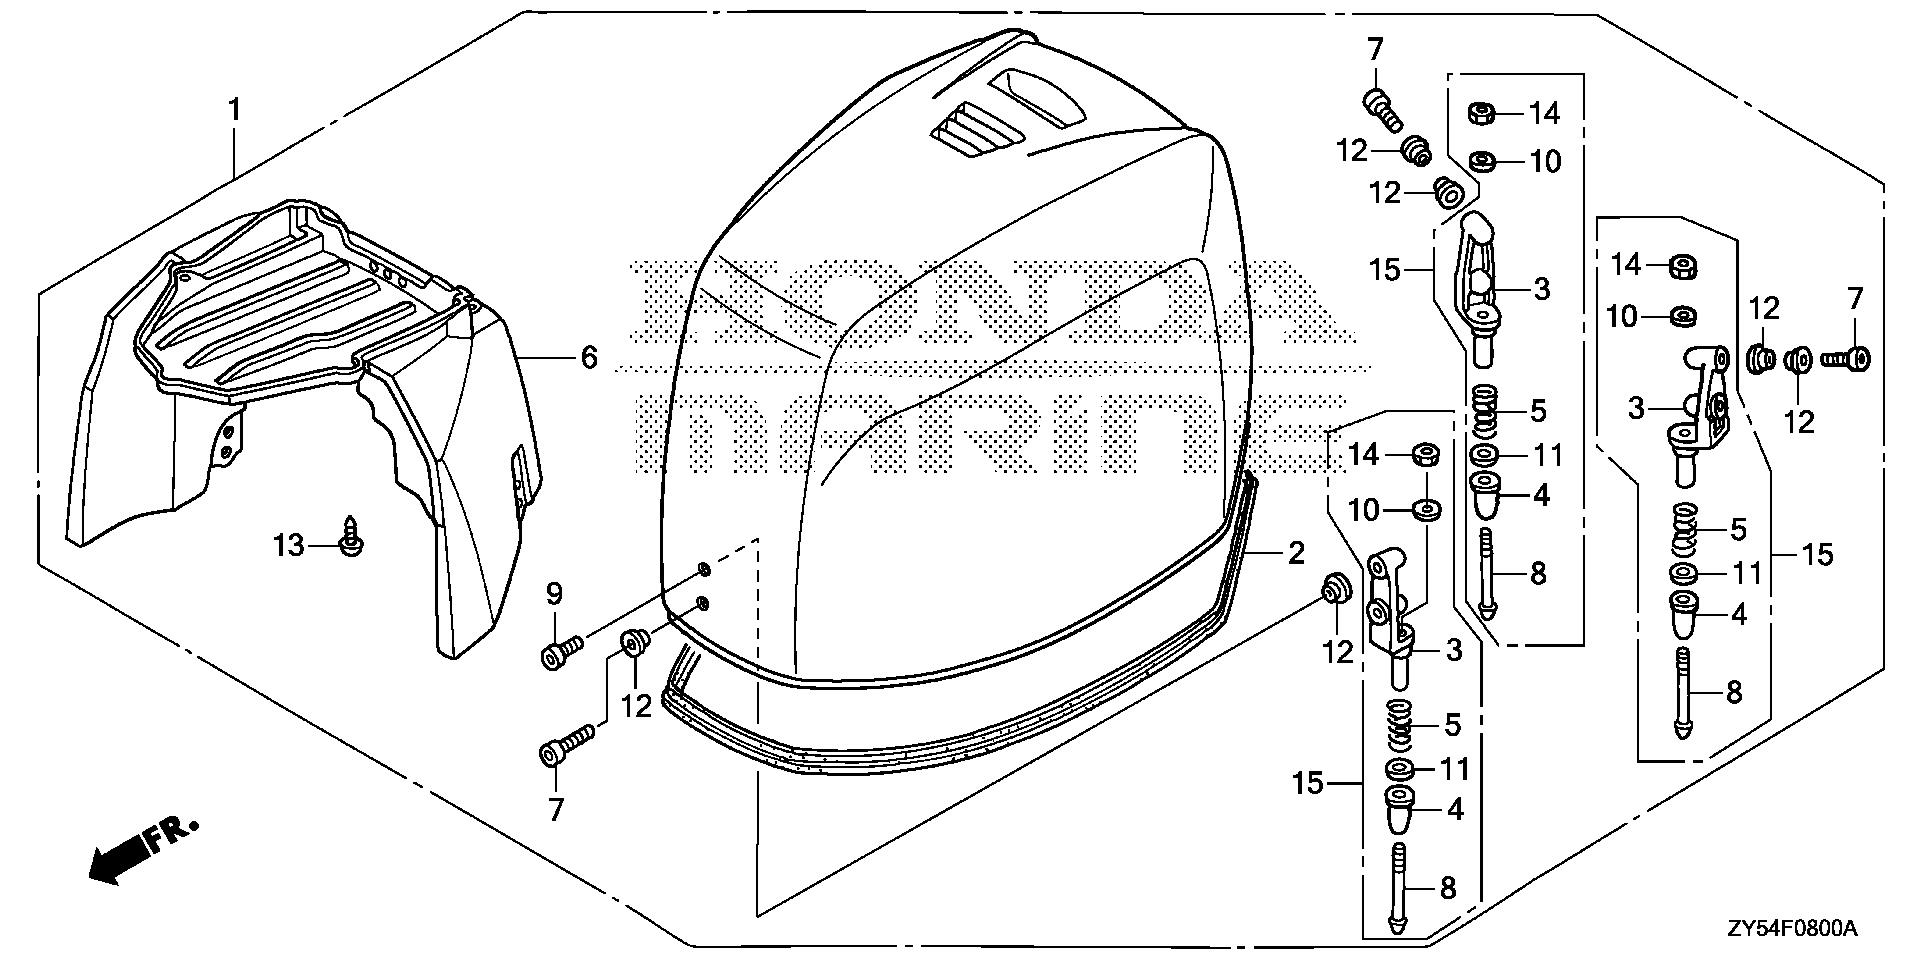 Honda Marine Parts Look Up Official Site Bf 150 Wiring Diagram Engine Cover Assy